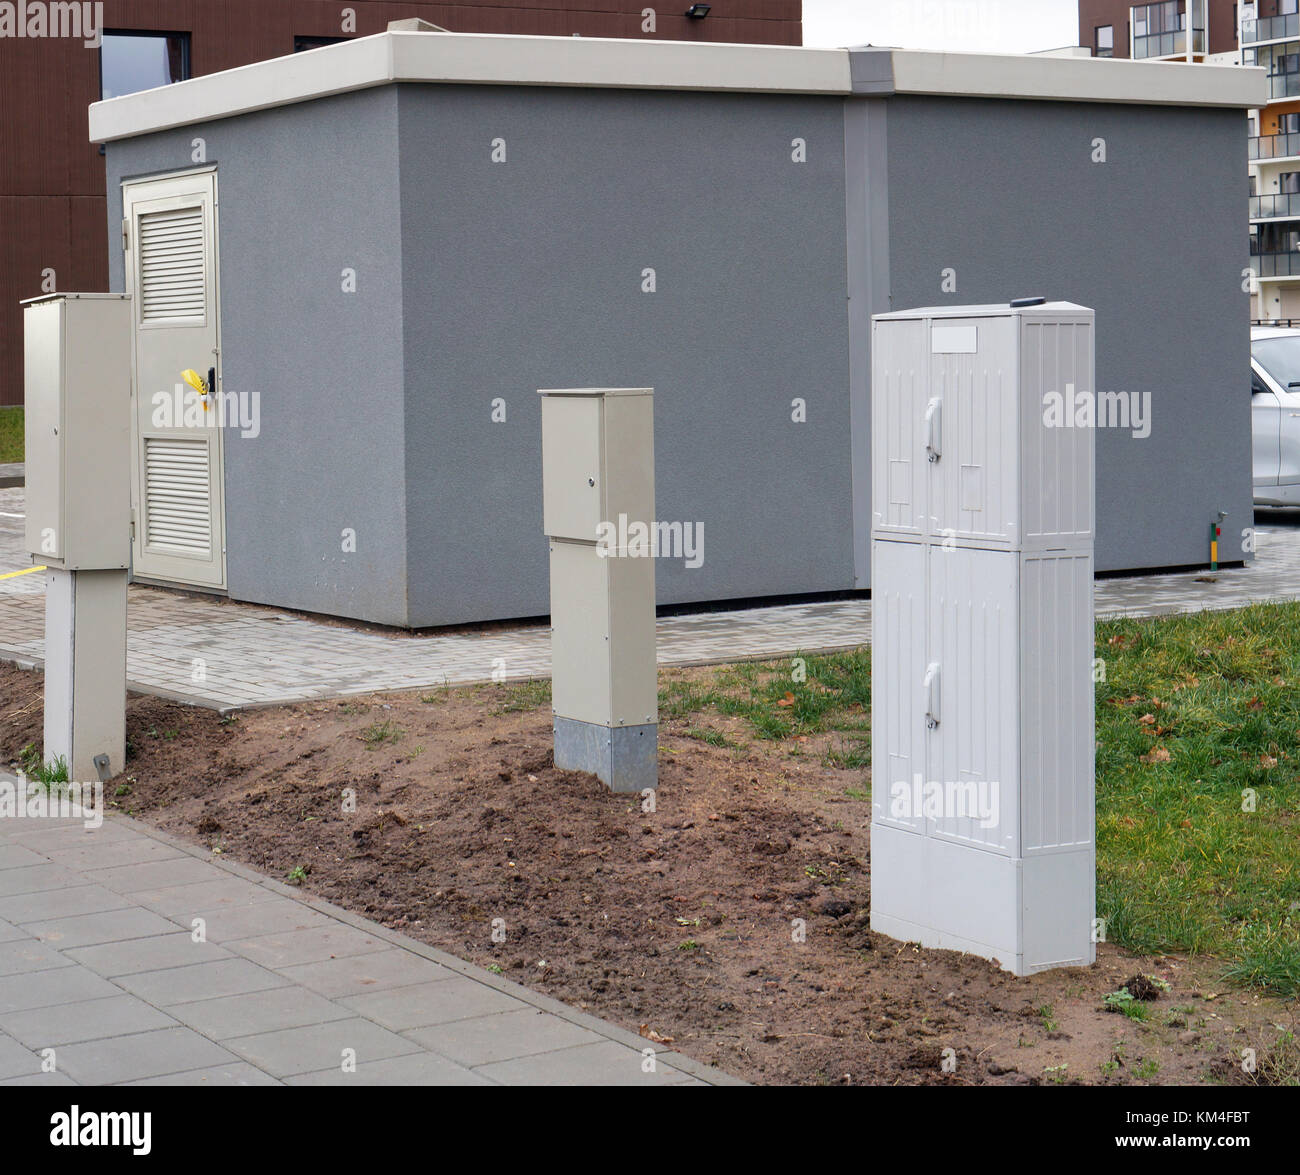 New modern transformer substation and small junction boxes in the new modern transformer substation and small junction boxes in the area of urban new buildings cloudy day panoramic collage sciox Gallery